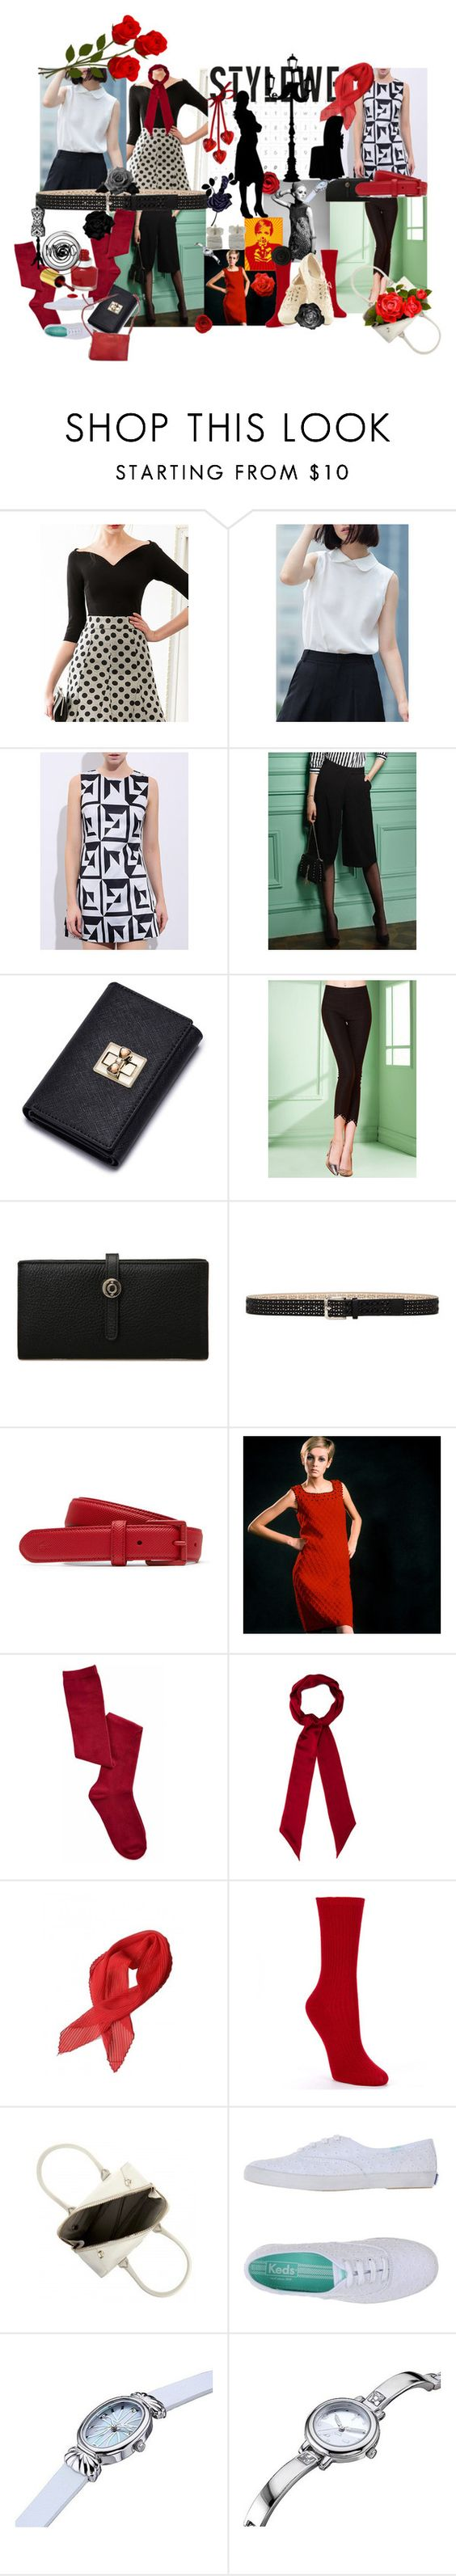 """""""Stylewe does Twiggy"""" by lerp ❤ liked on Polyvore featuring Steve Madden, Lacoste, Henri Bendel, HOT SOX, Furla, Keds, Modalu, Target, NOVICA and stylewe"""